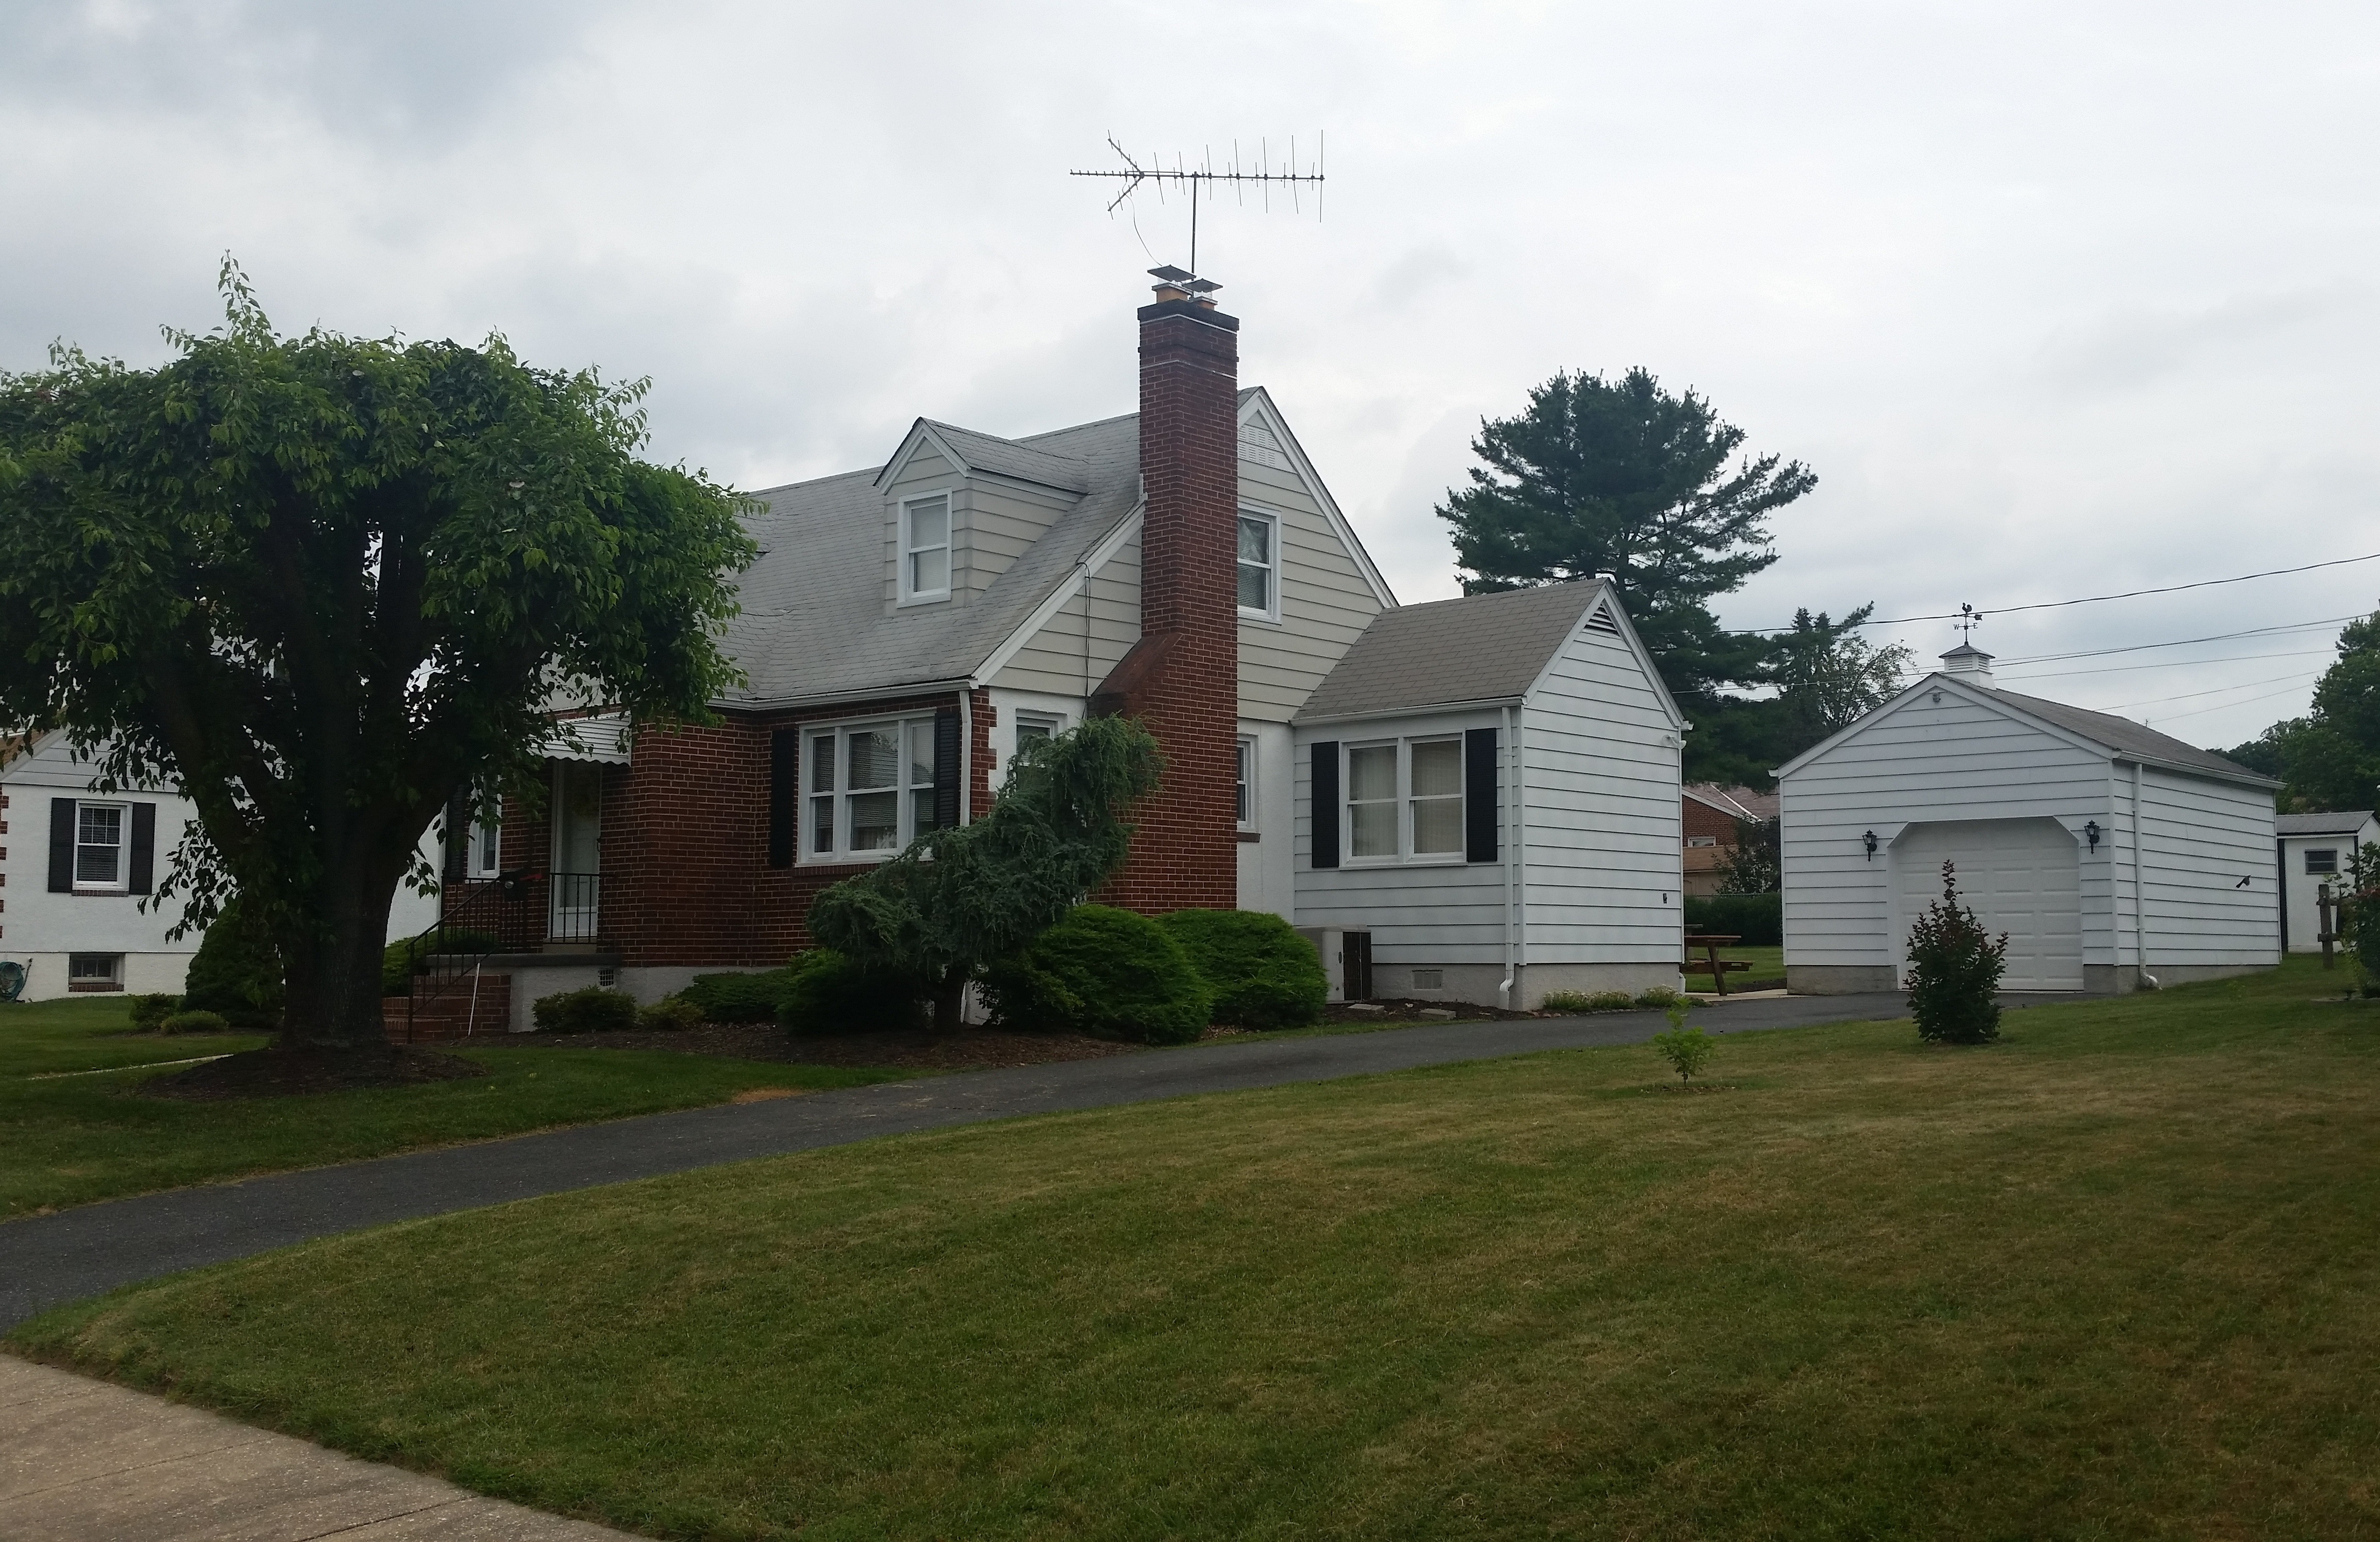 Cape Cod Home For Sale In Nottingham Md